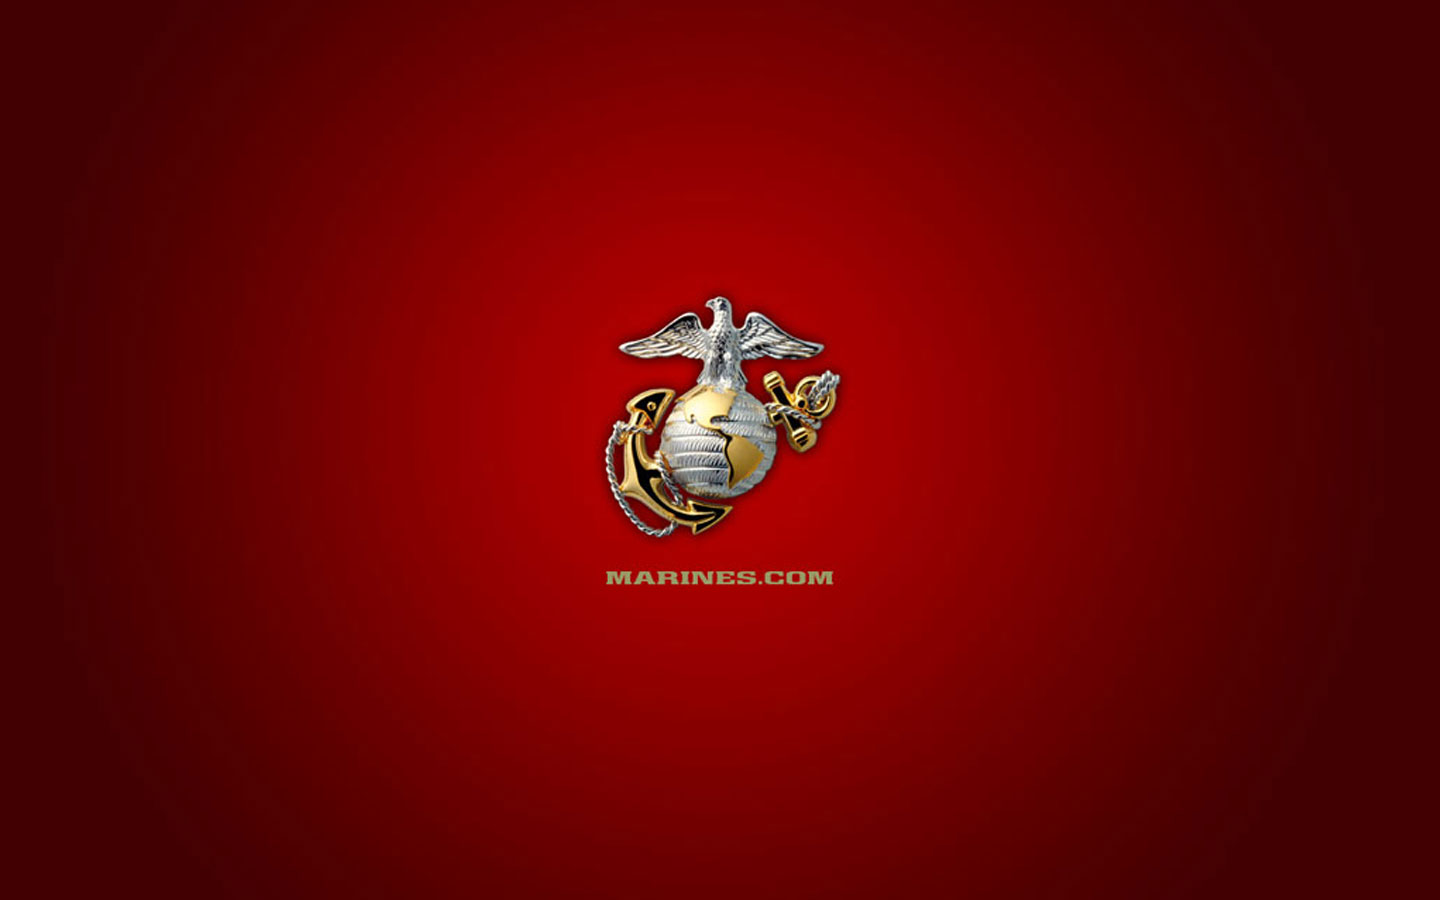 Download Marines Phone Wallpaper Hd Backgrounds Download